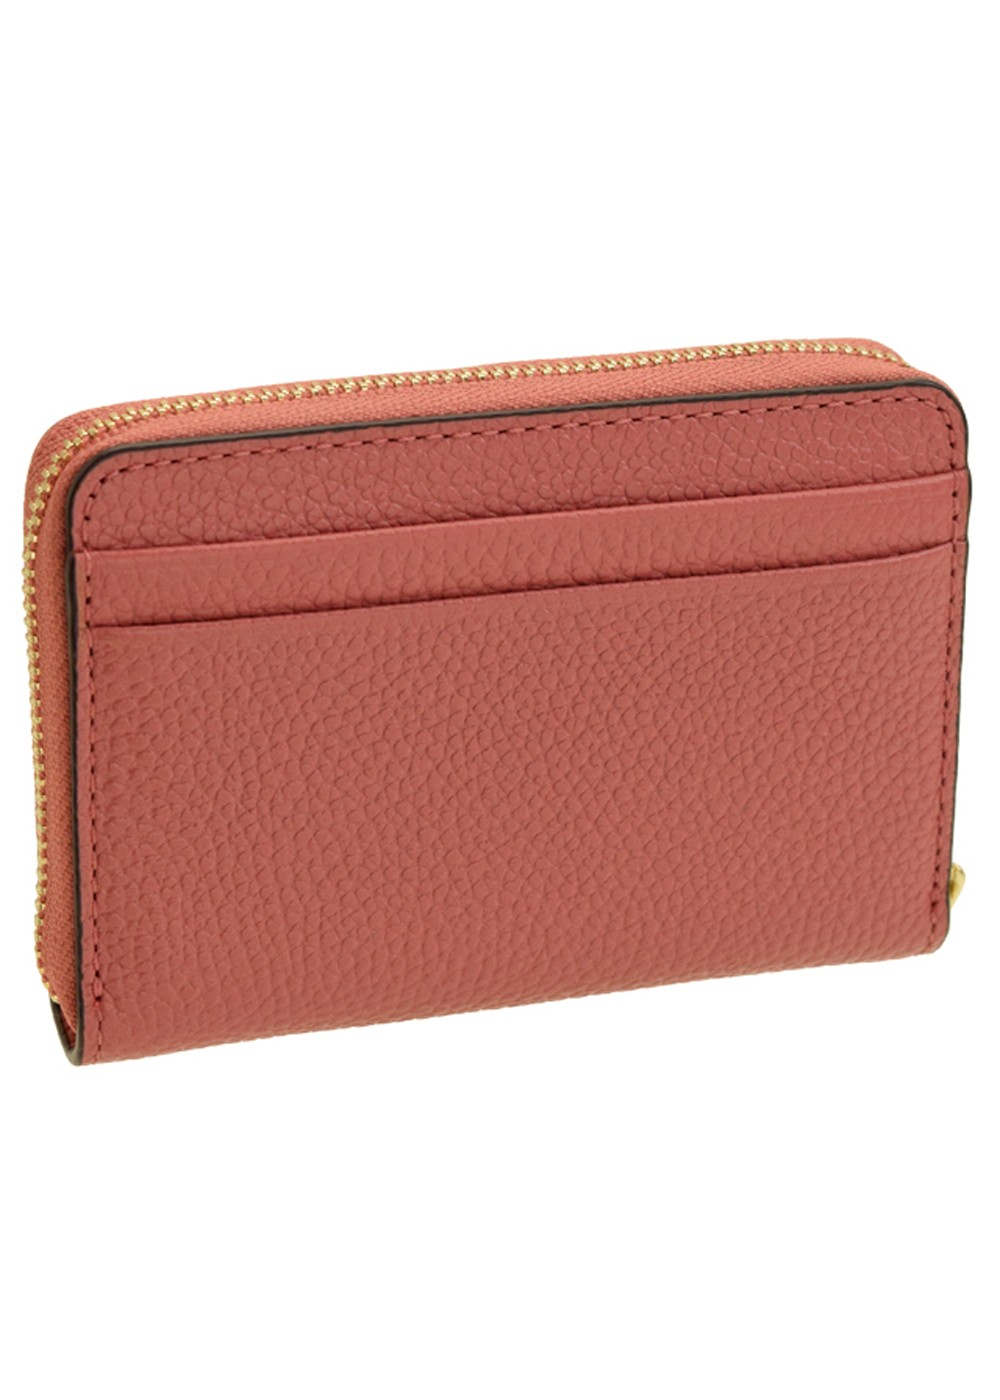 【5/22入荷】MONEY PIECES ZA COIN CARD CASE|ROSE 金具ゴールド|カードケース|MICHAEL KORS(C)